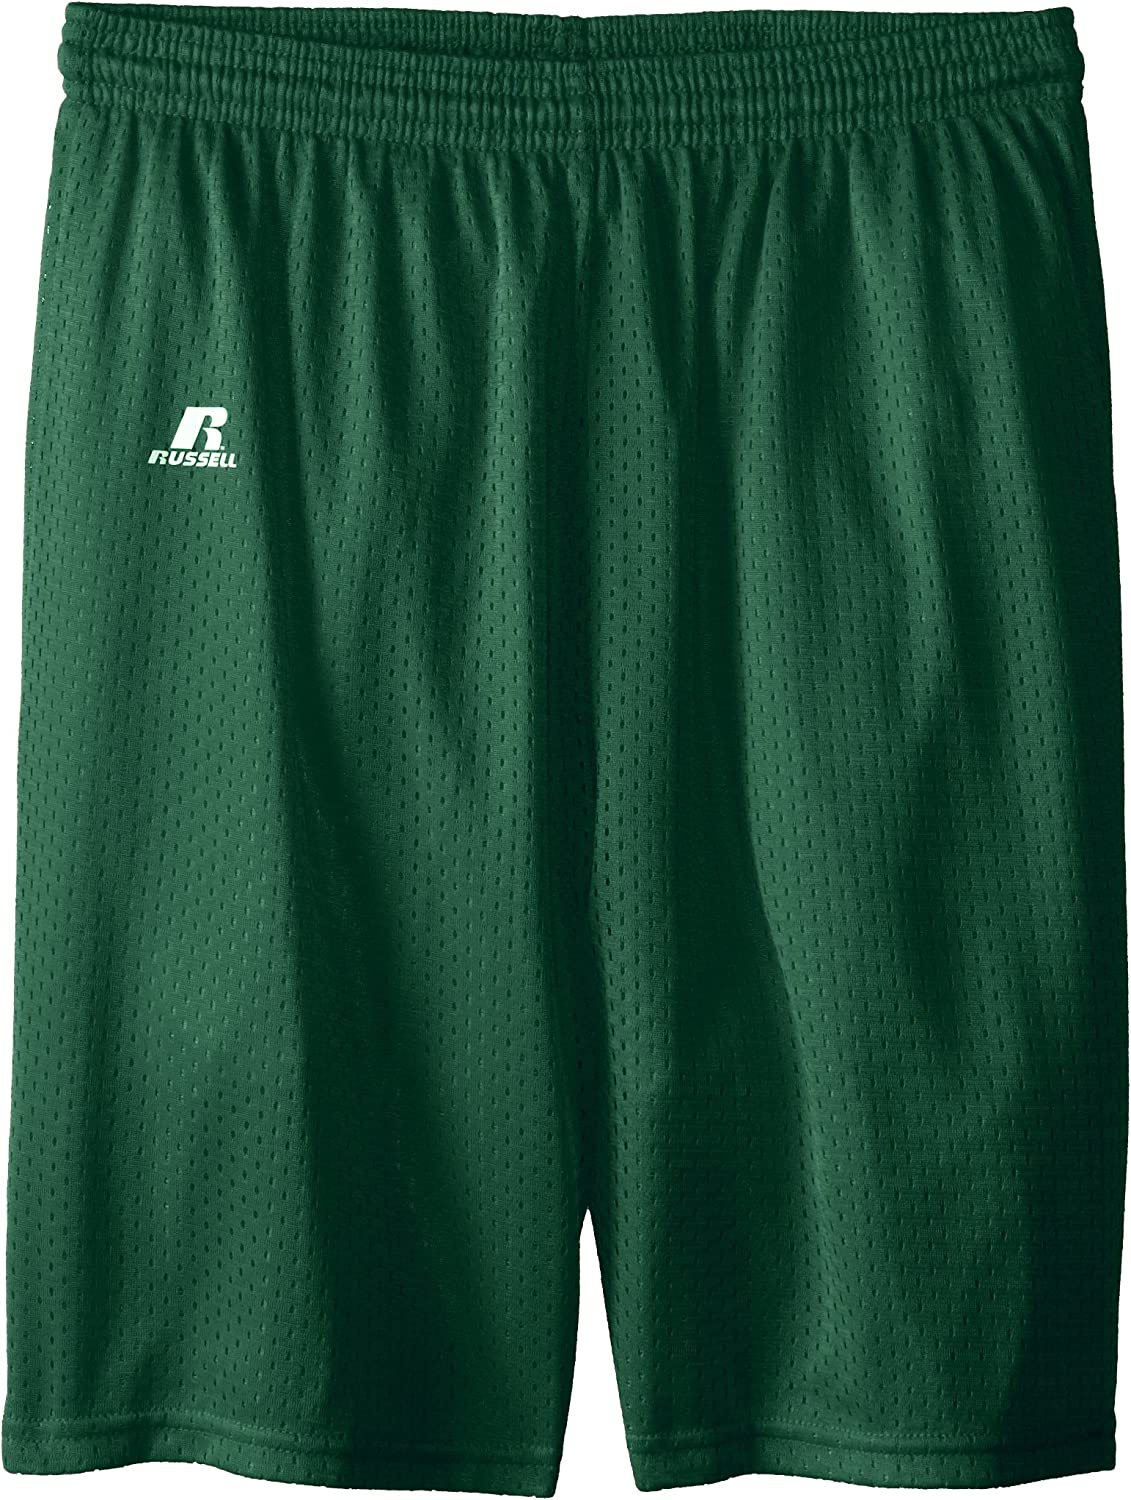 Russell Athletic Big Boys Youth Mesh Short